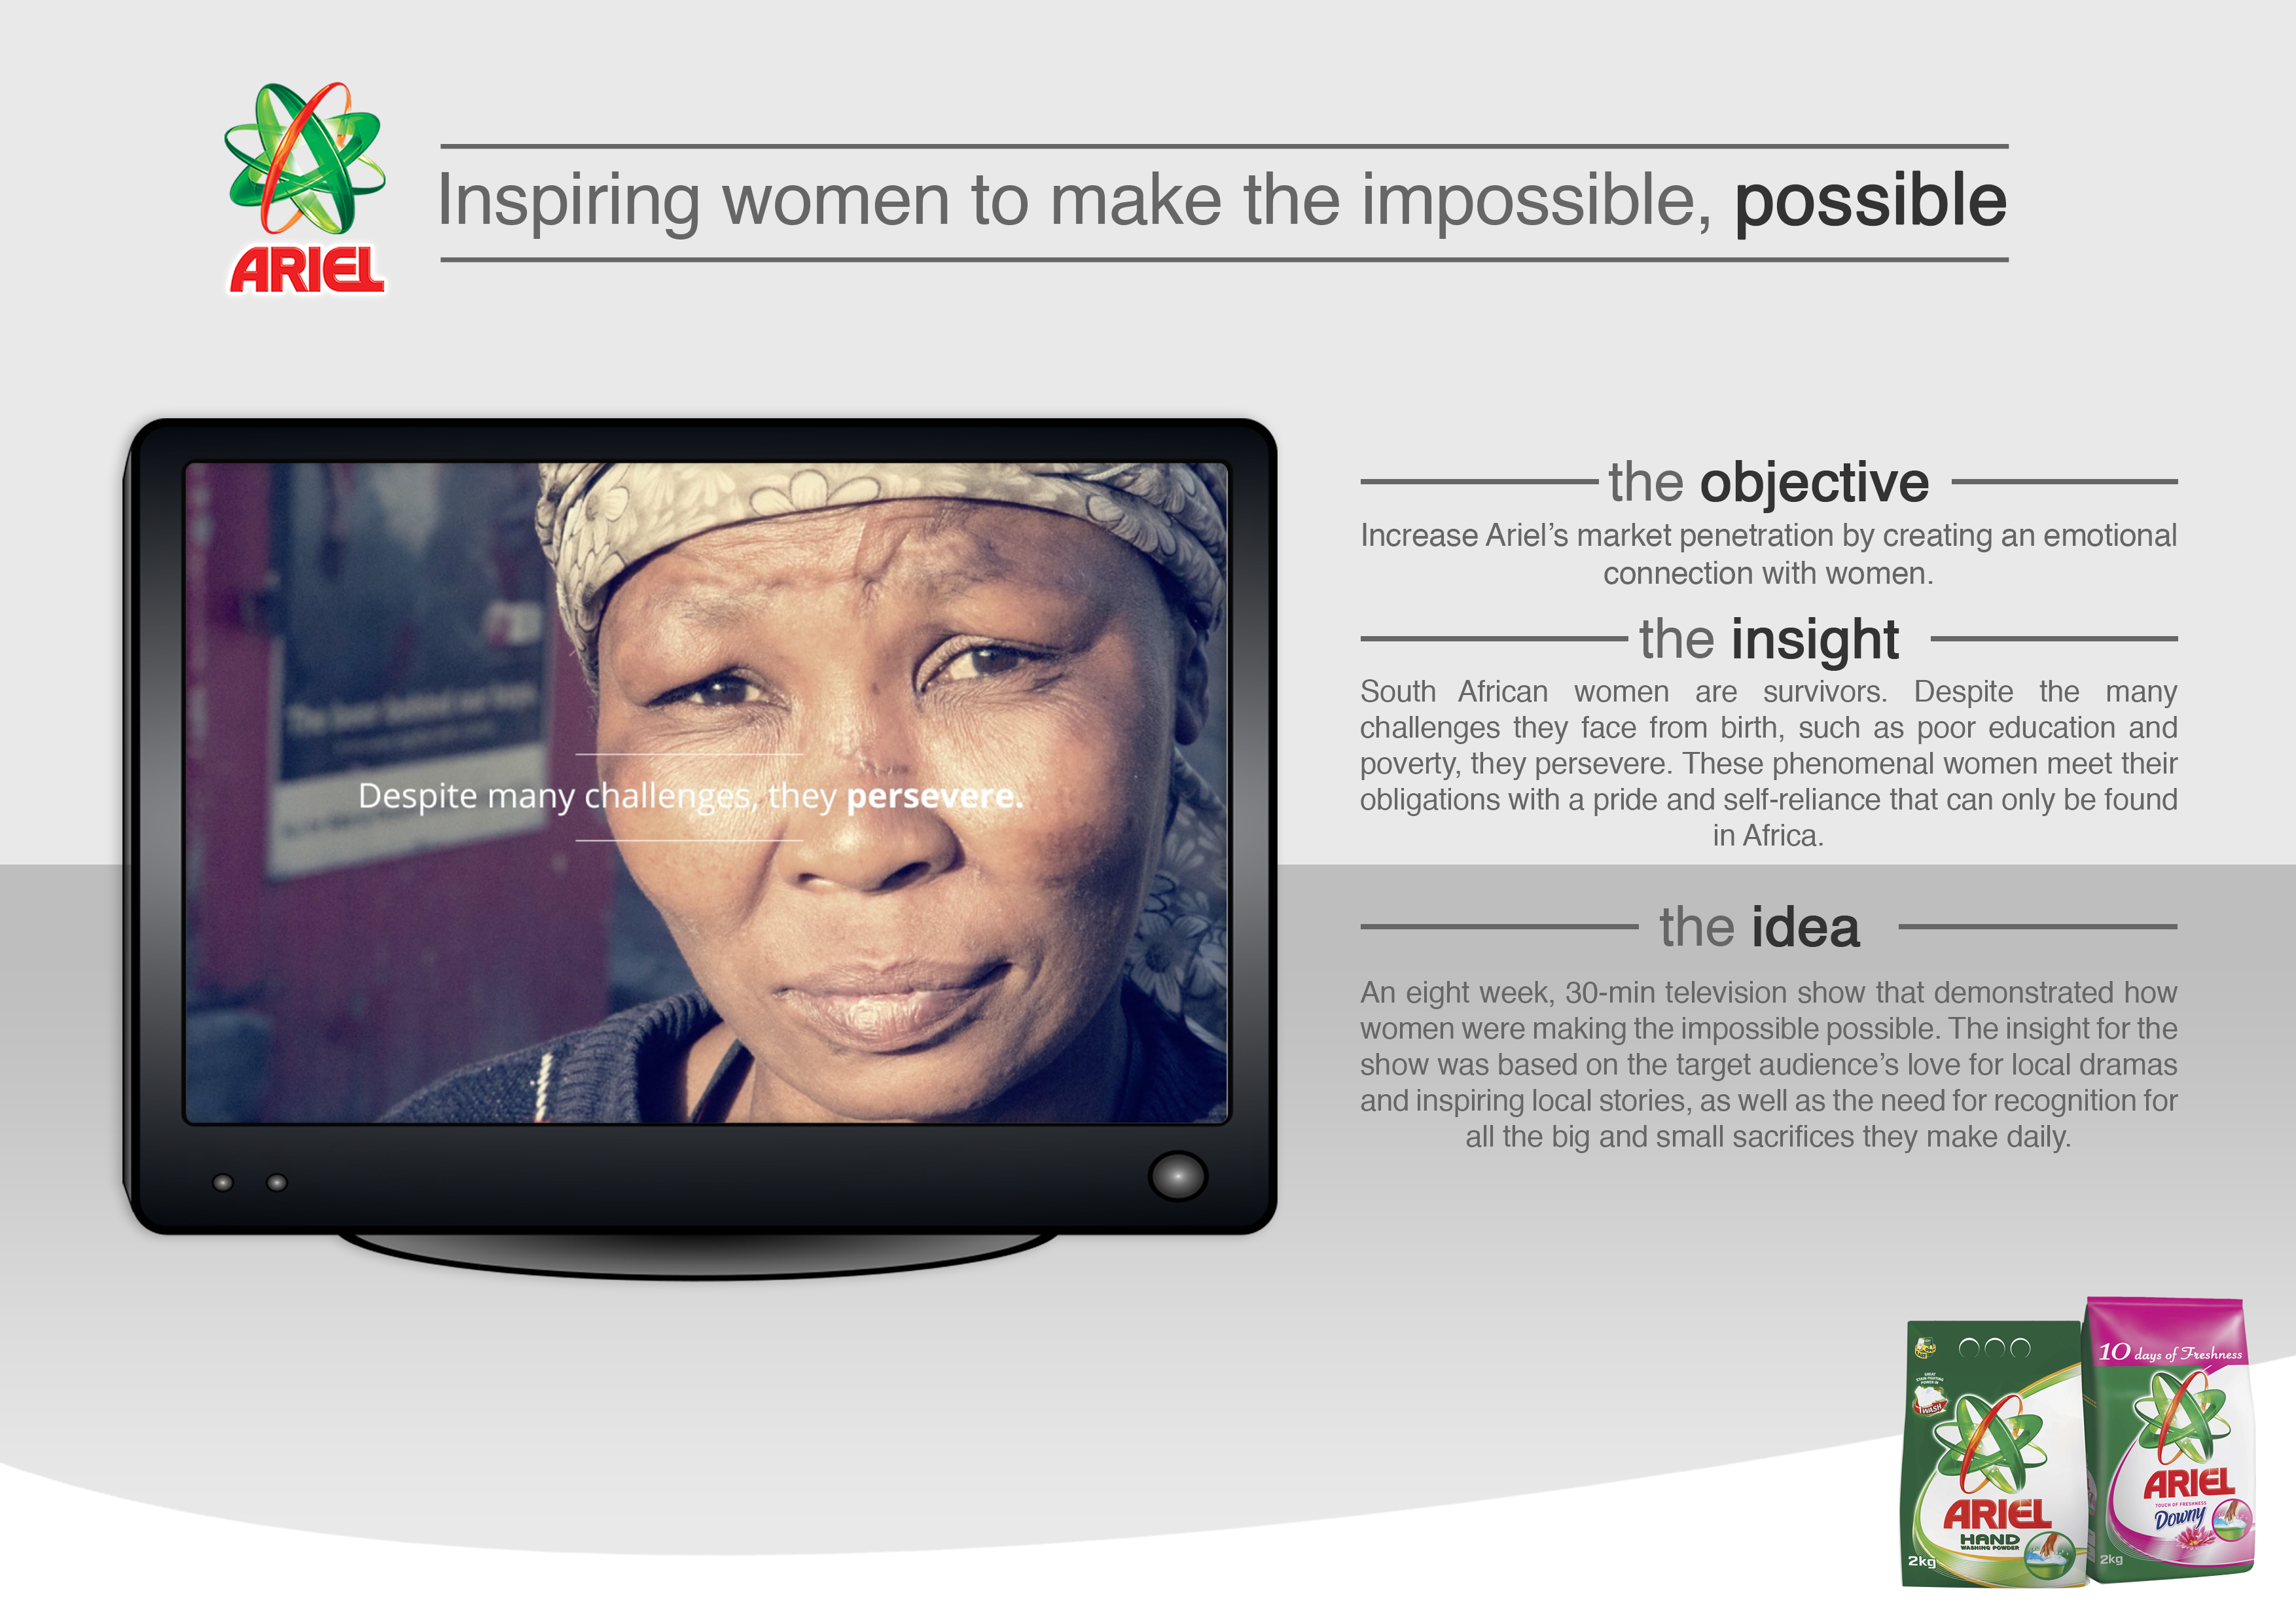 MediaCom South Africa - People First, Better Results